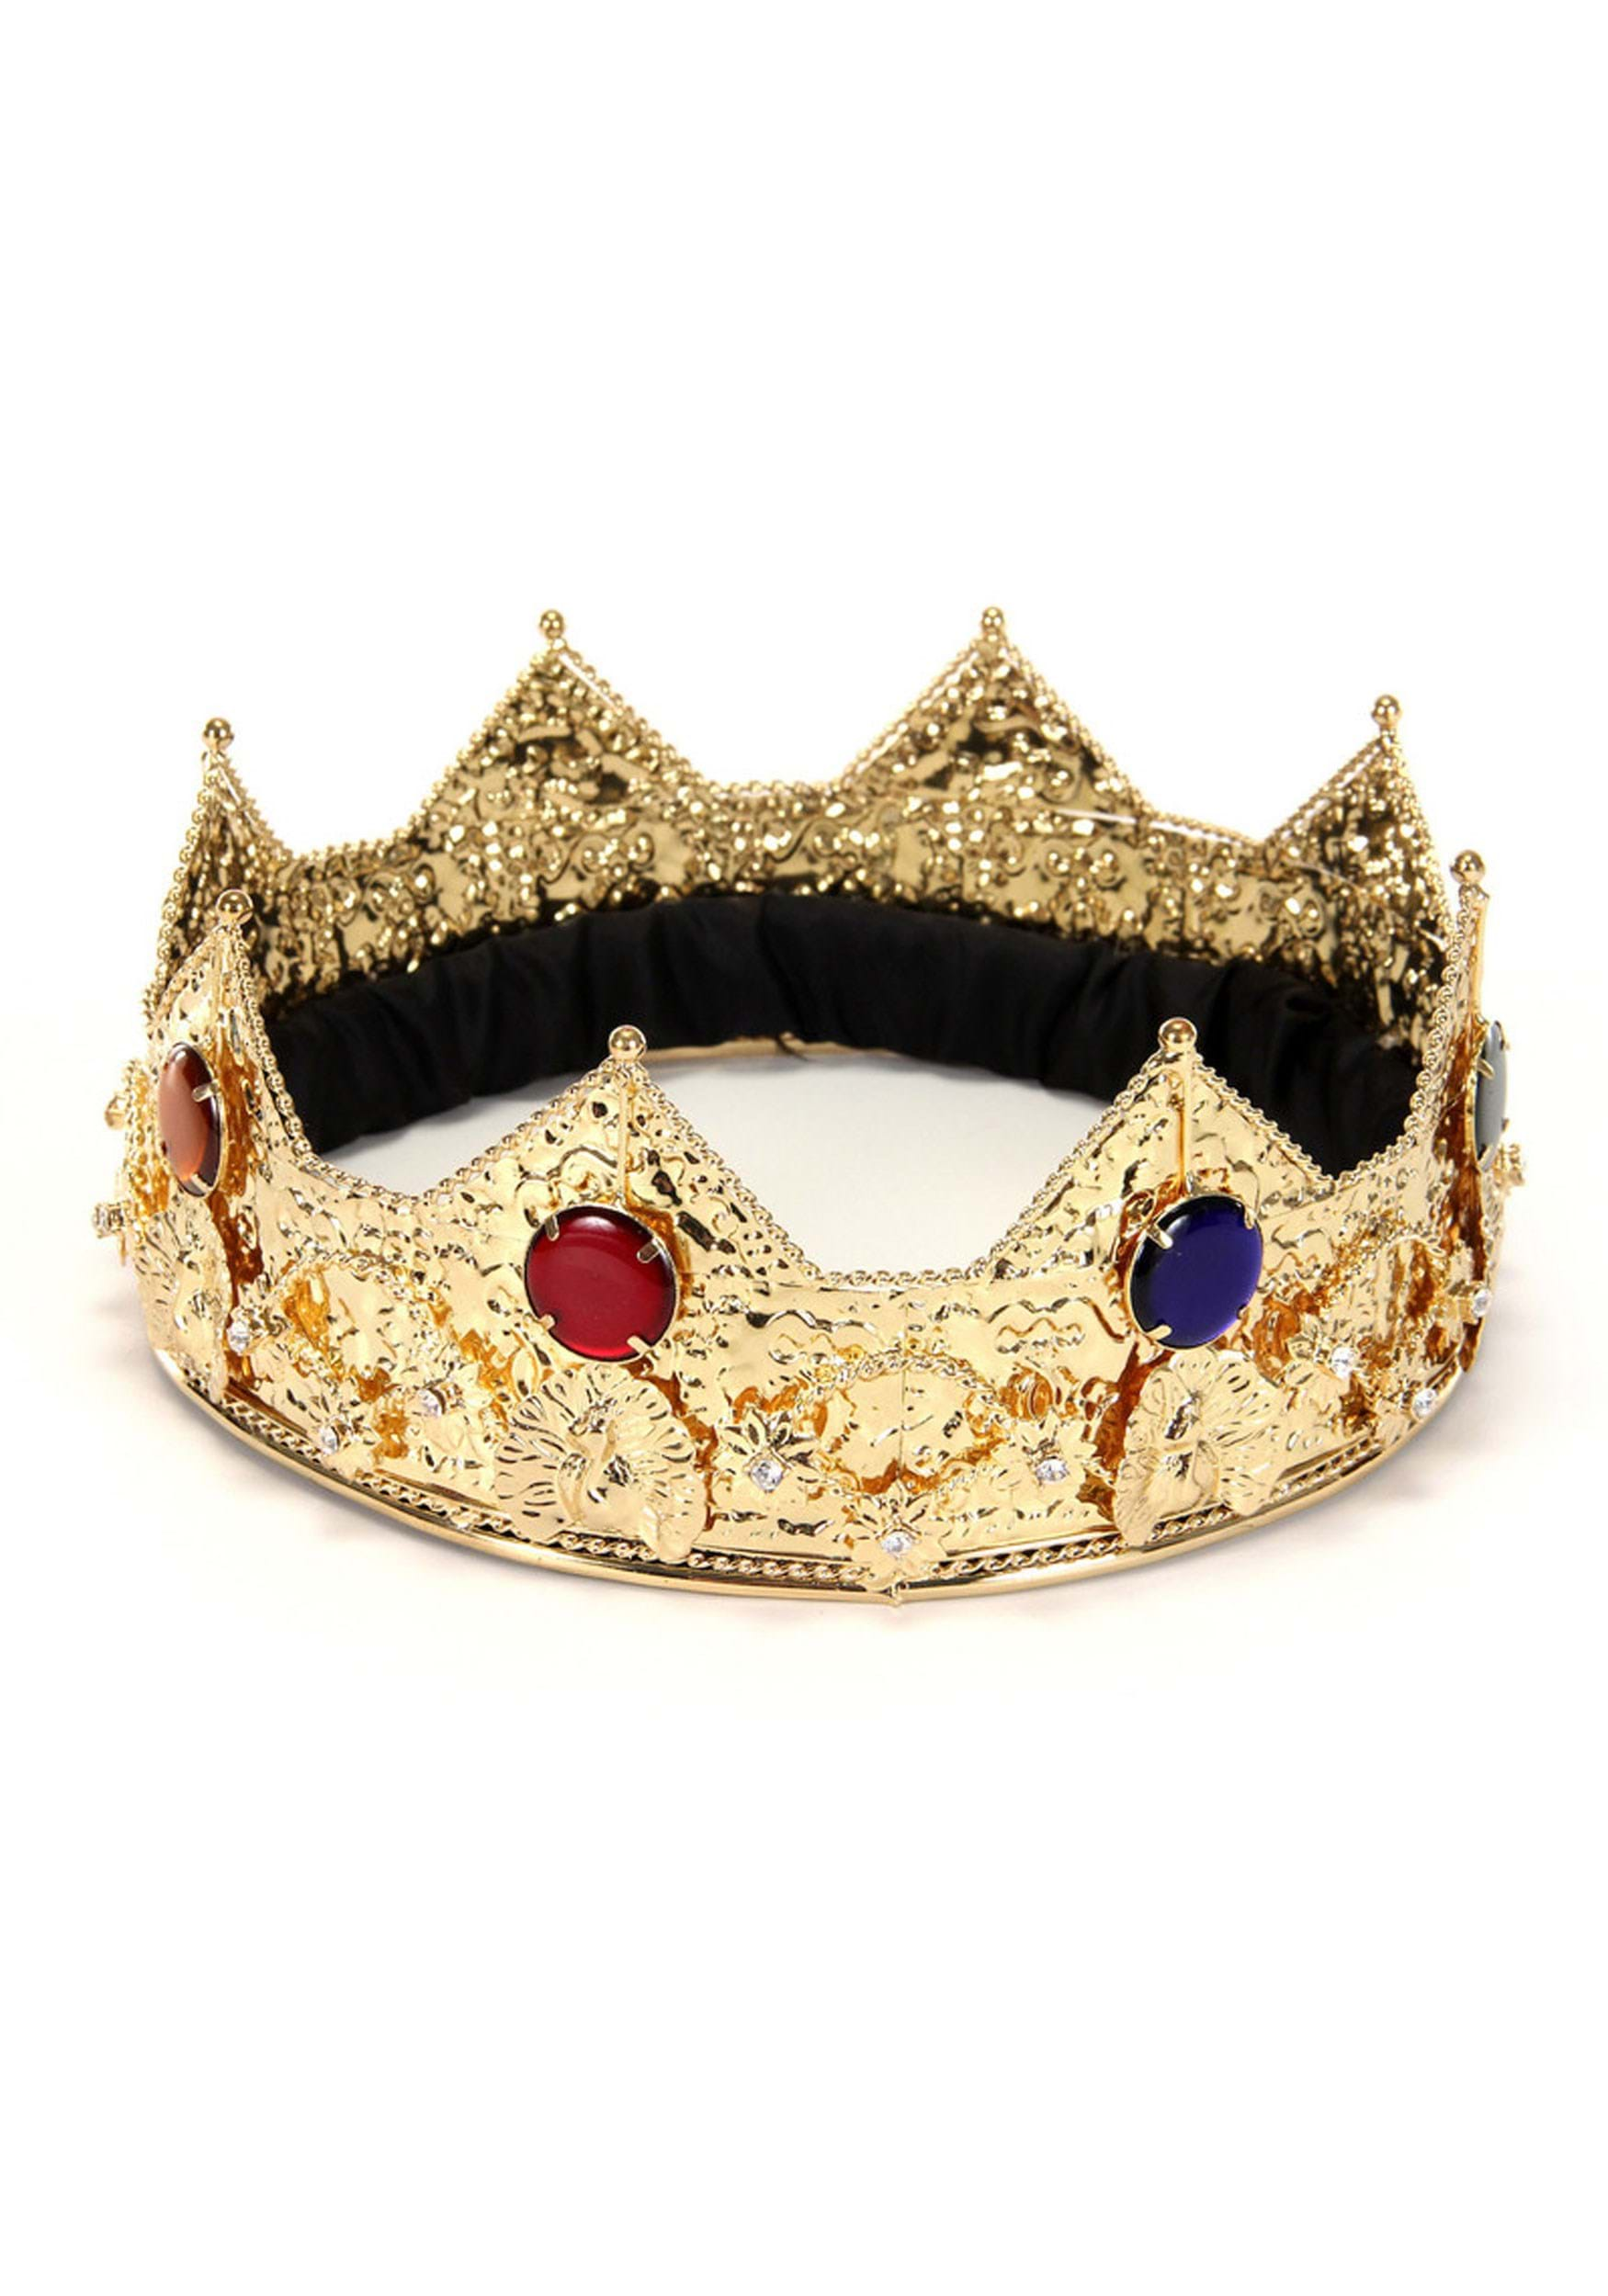 Http Www Halloweencostumes Com Gold King Crown Html